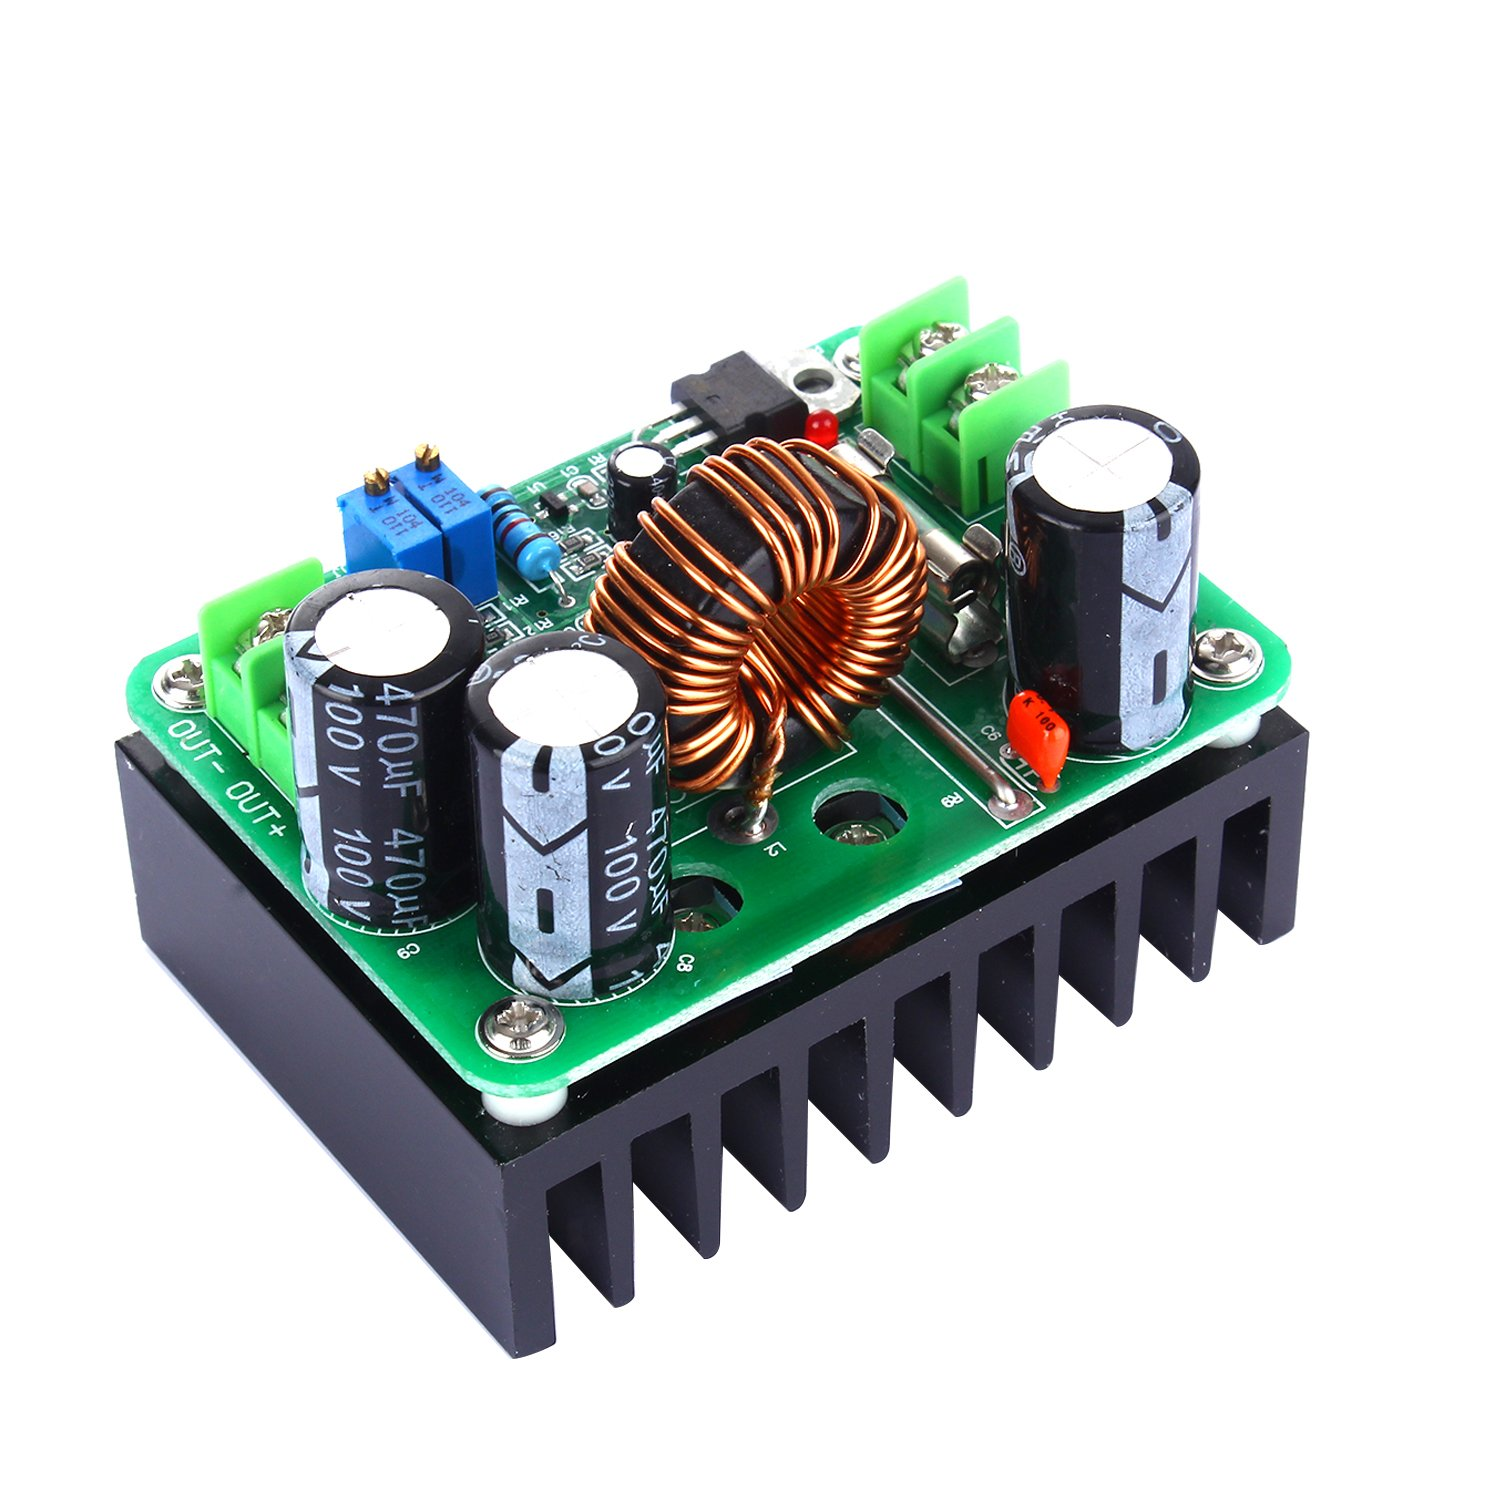 tinxi® 600W DC 10-60V To 12-80V Step-up Module Boost Power Suppy DC Converter 670280000